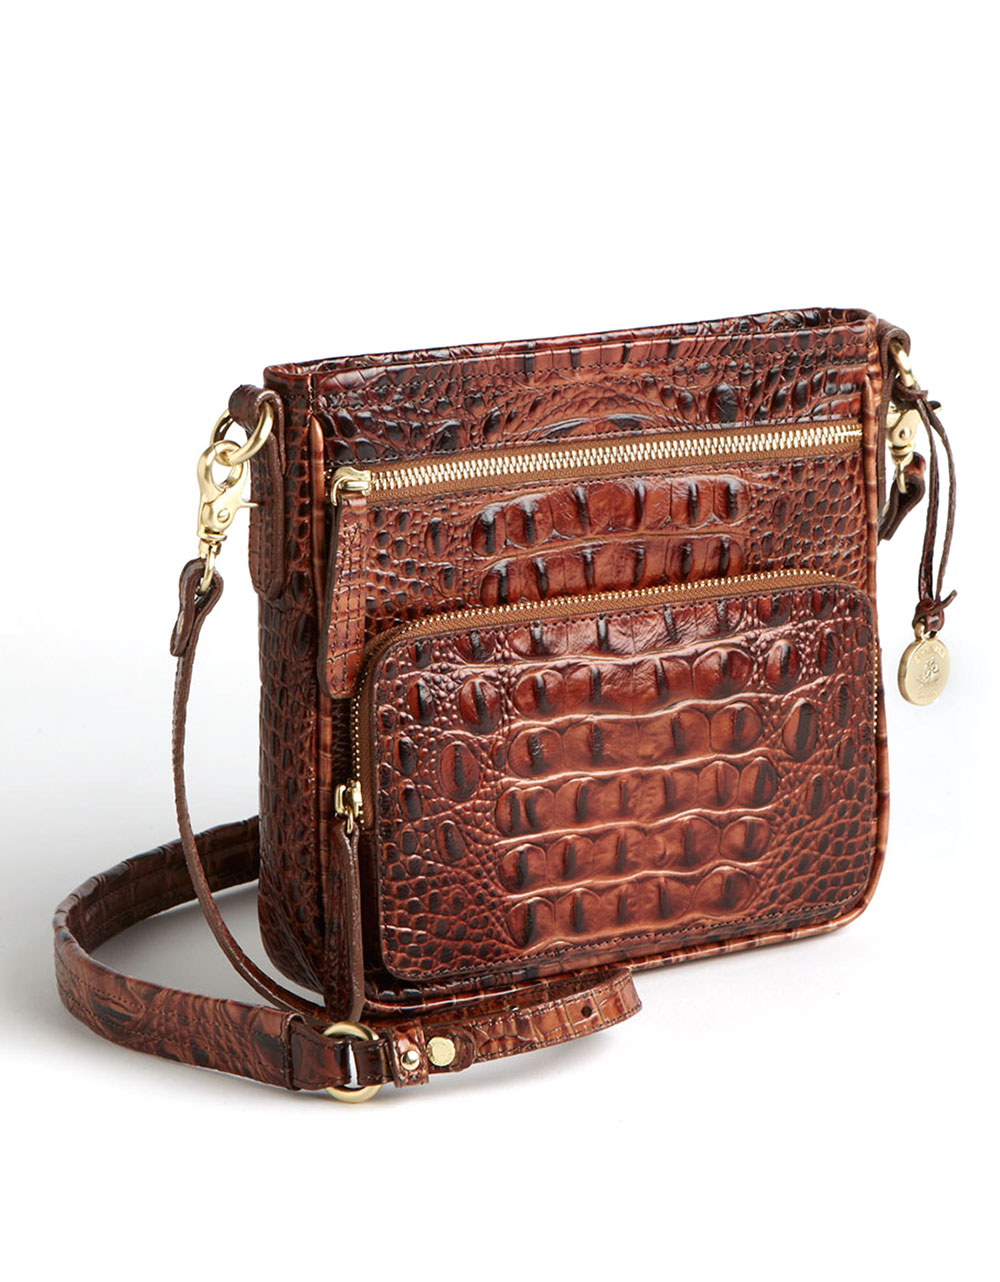 Shop Dillard's for your favorites handbags from Brahmin, Coach, MICHAEL Michael Kors, Dooney & Bourke, and Fossil. Designer purses including satchels, crossbody bags, clutches and wallets at Dillard's.